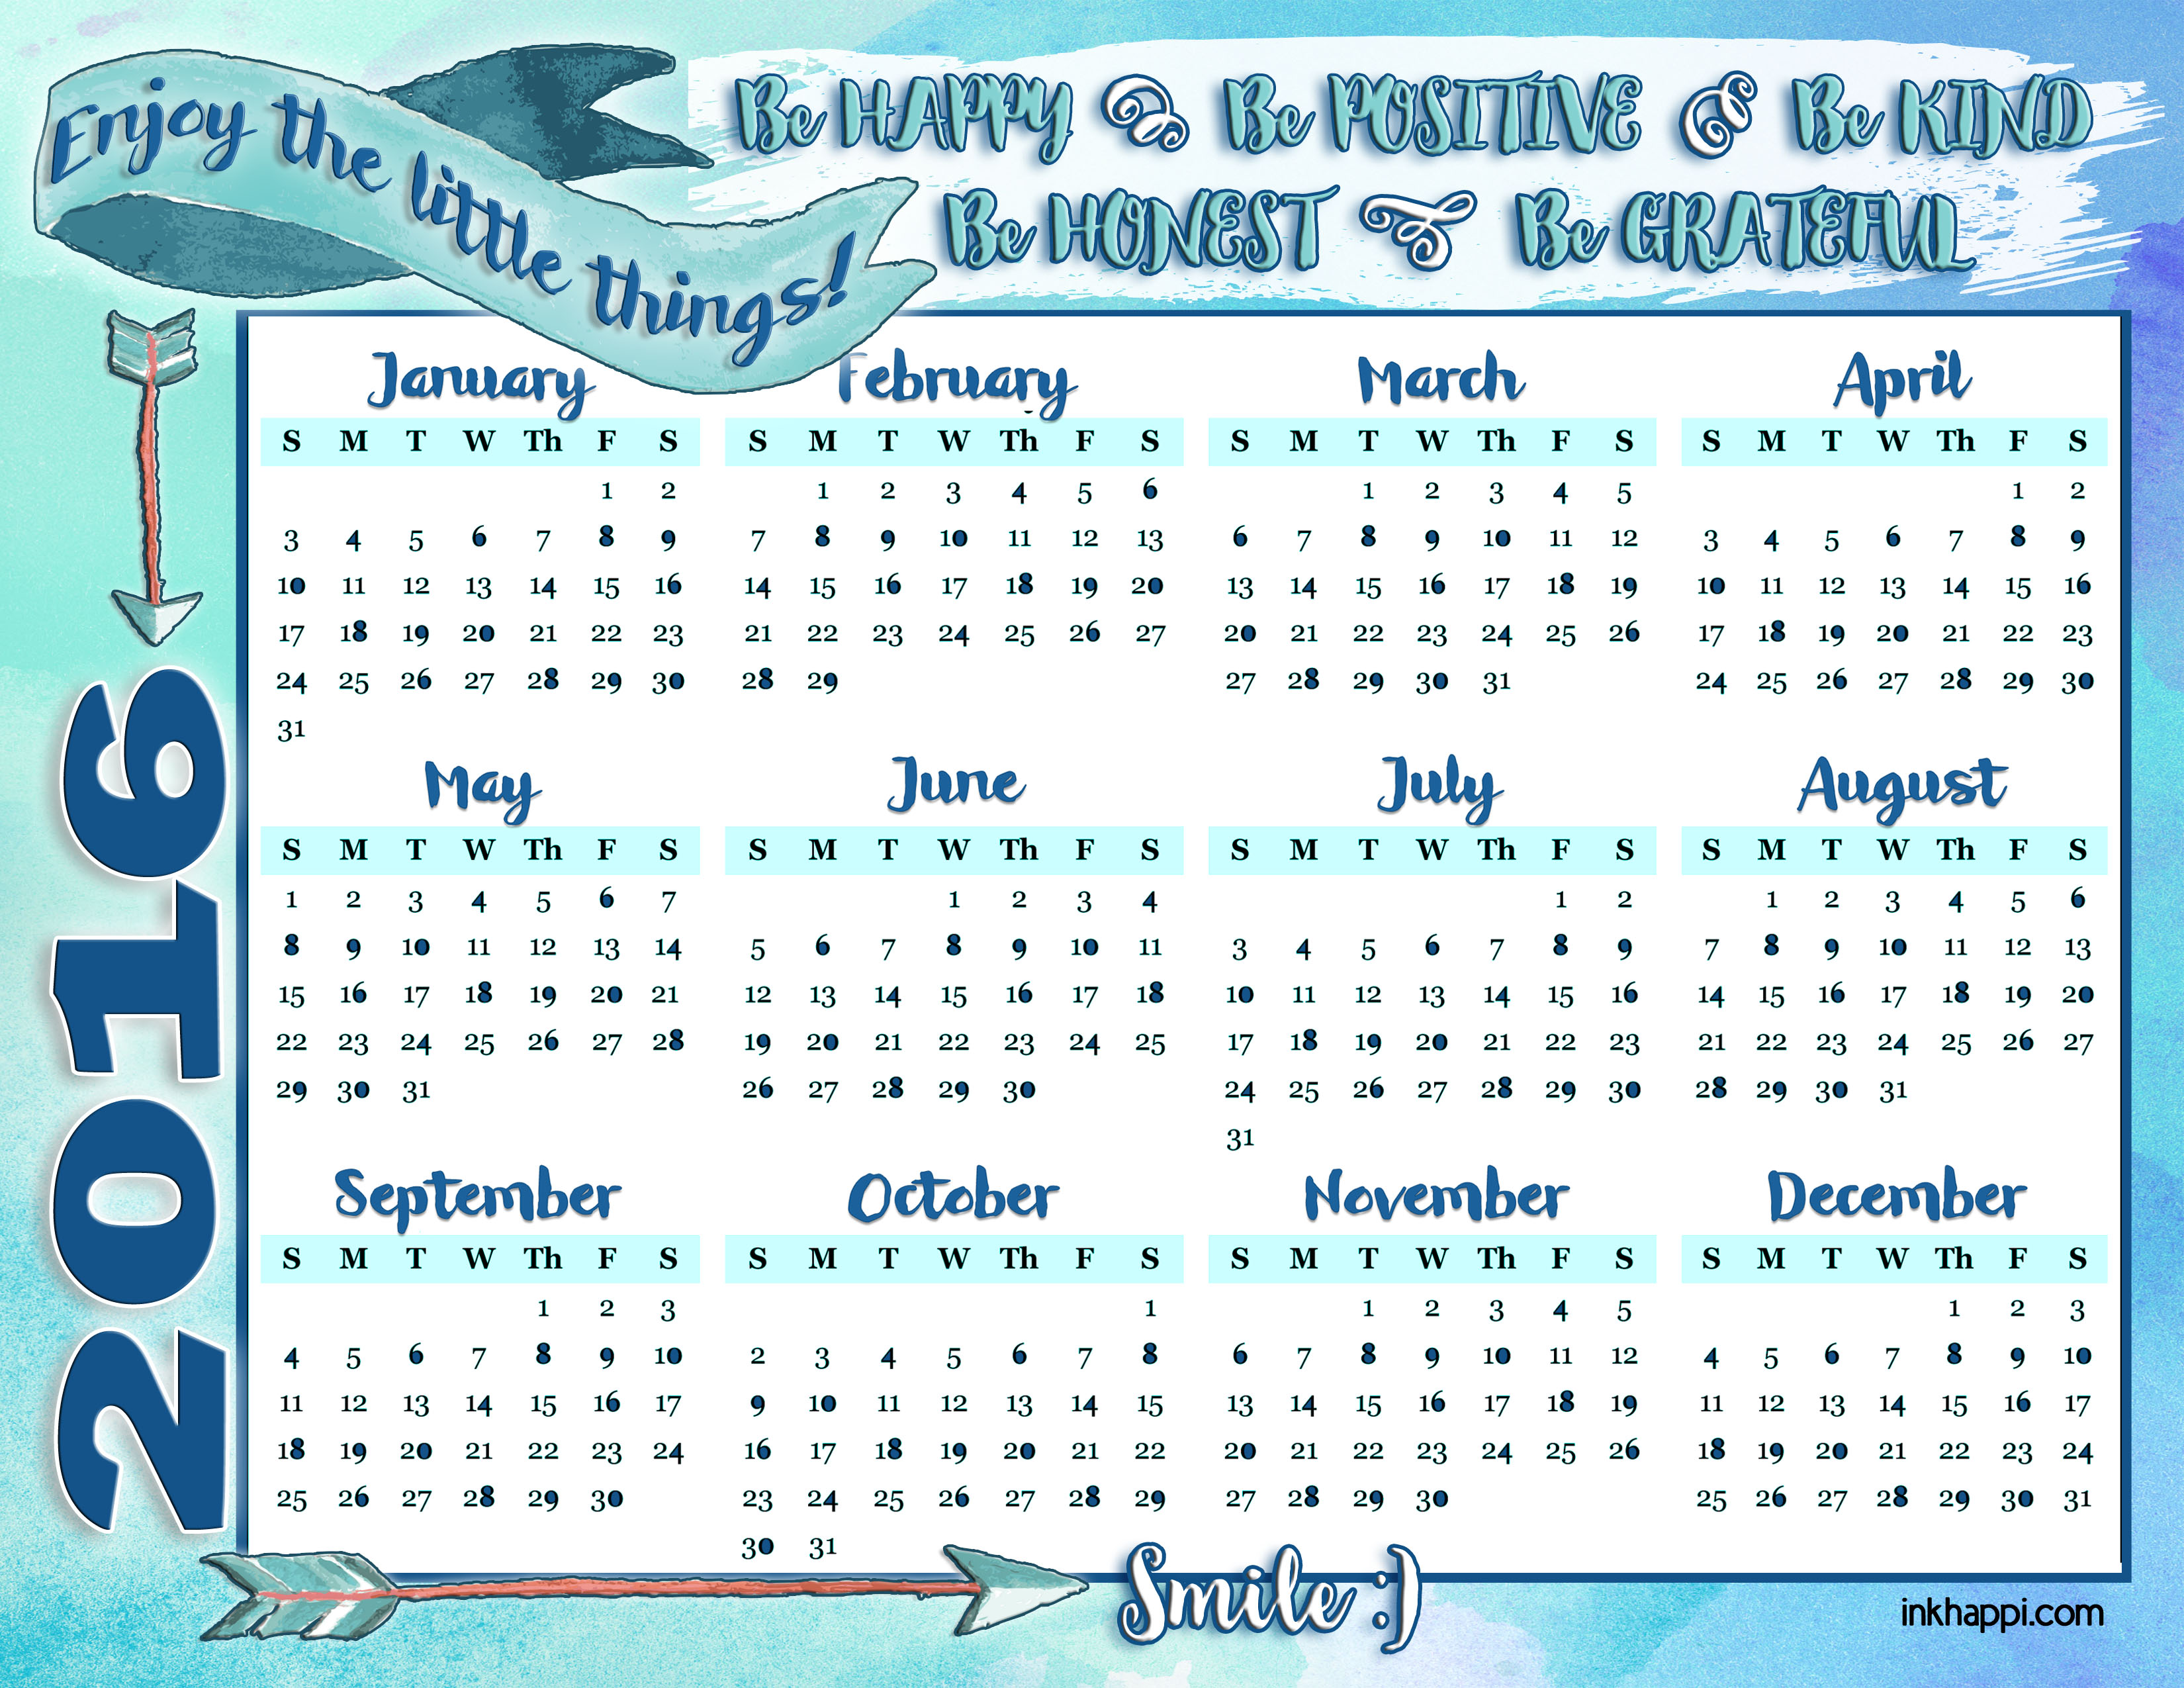 2016 Annual Calendar and some happy thoughts! - inkhappi